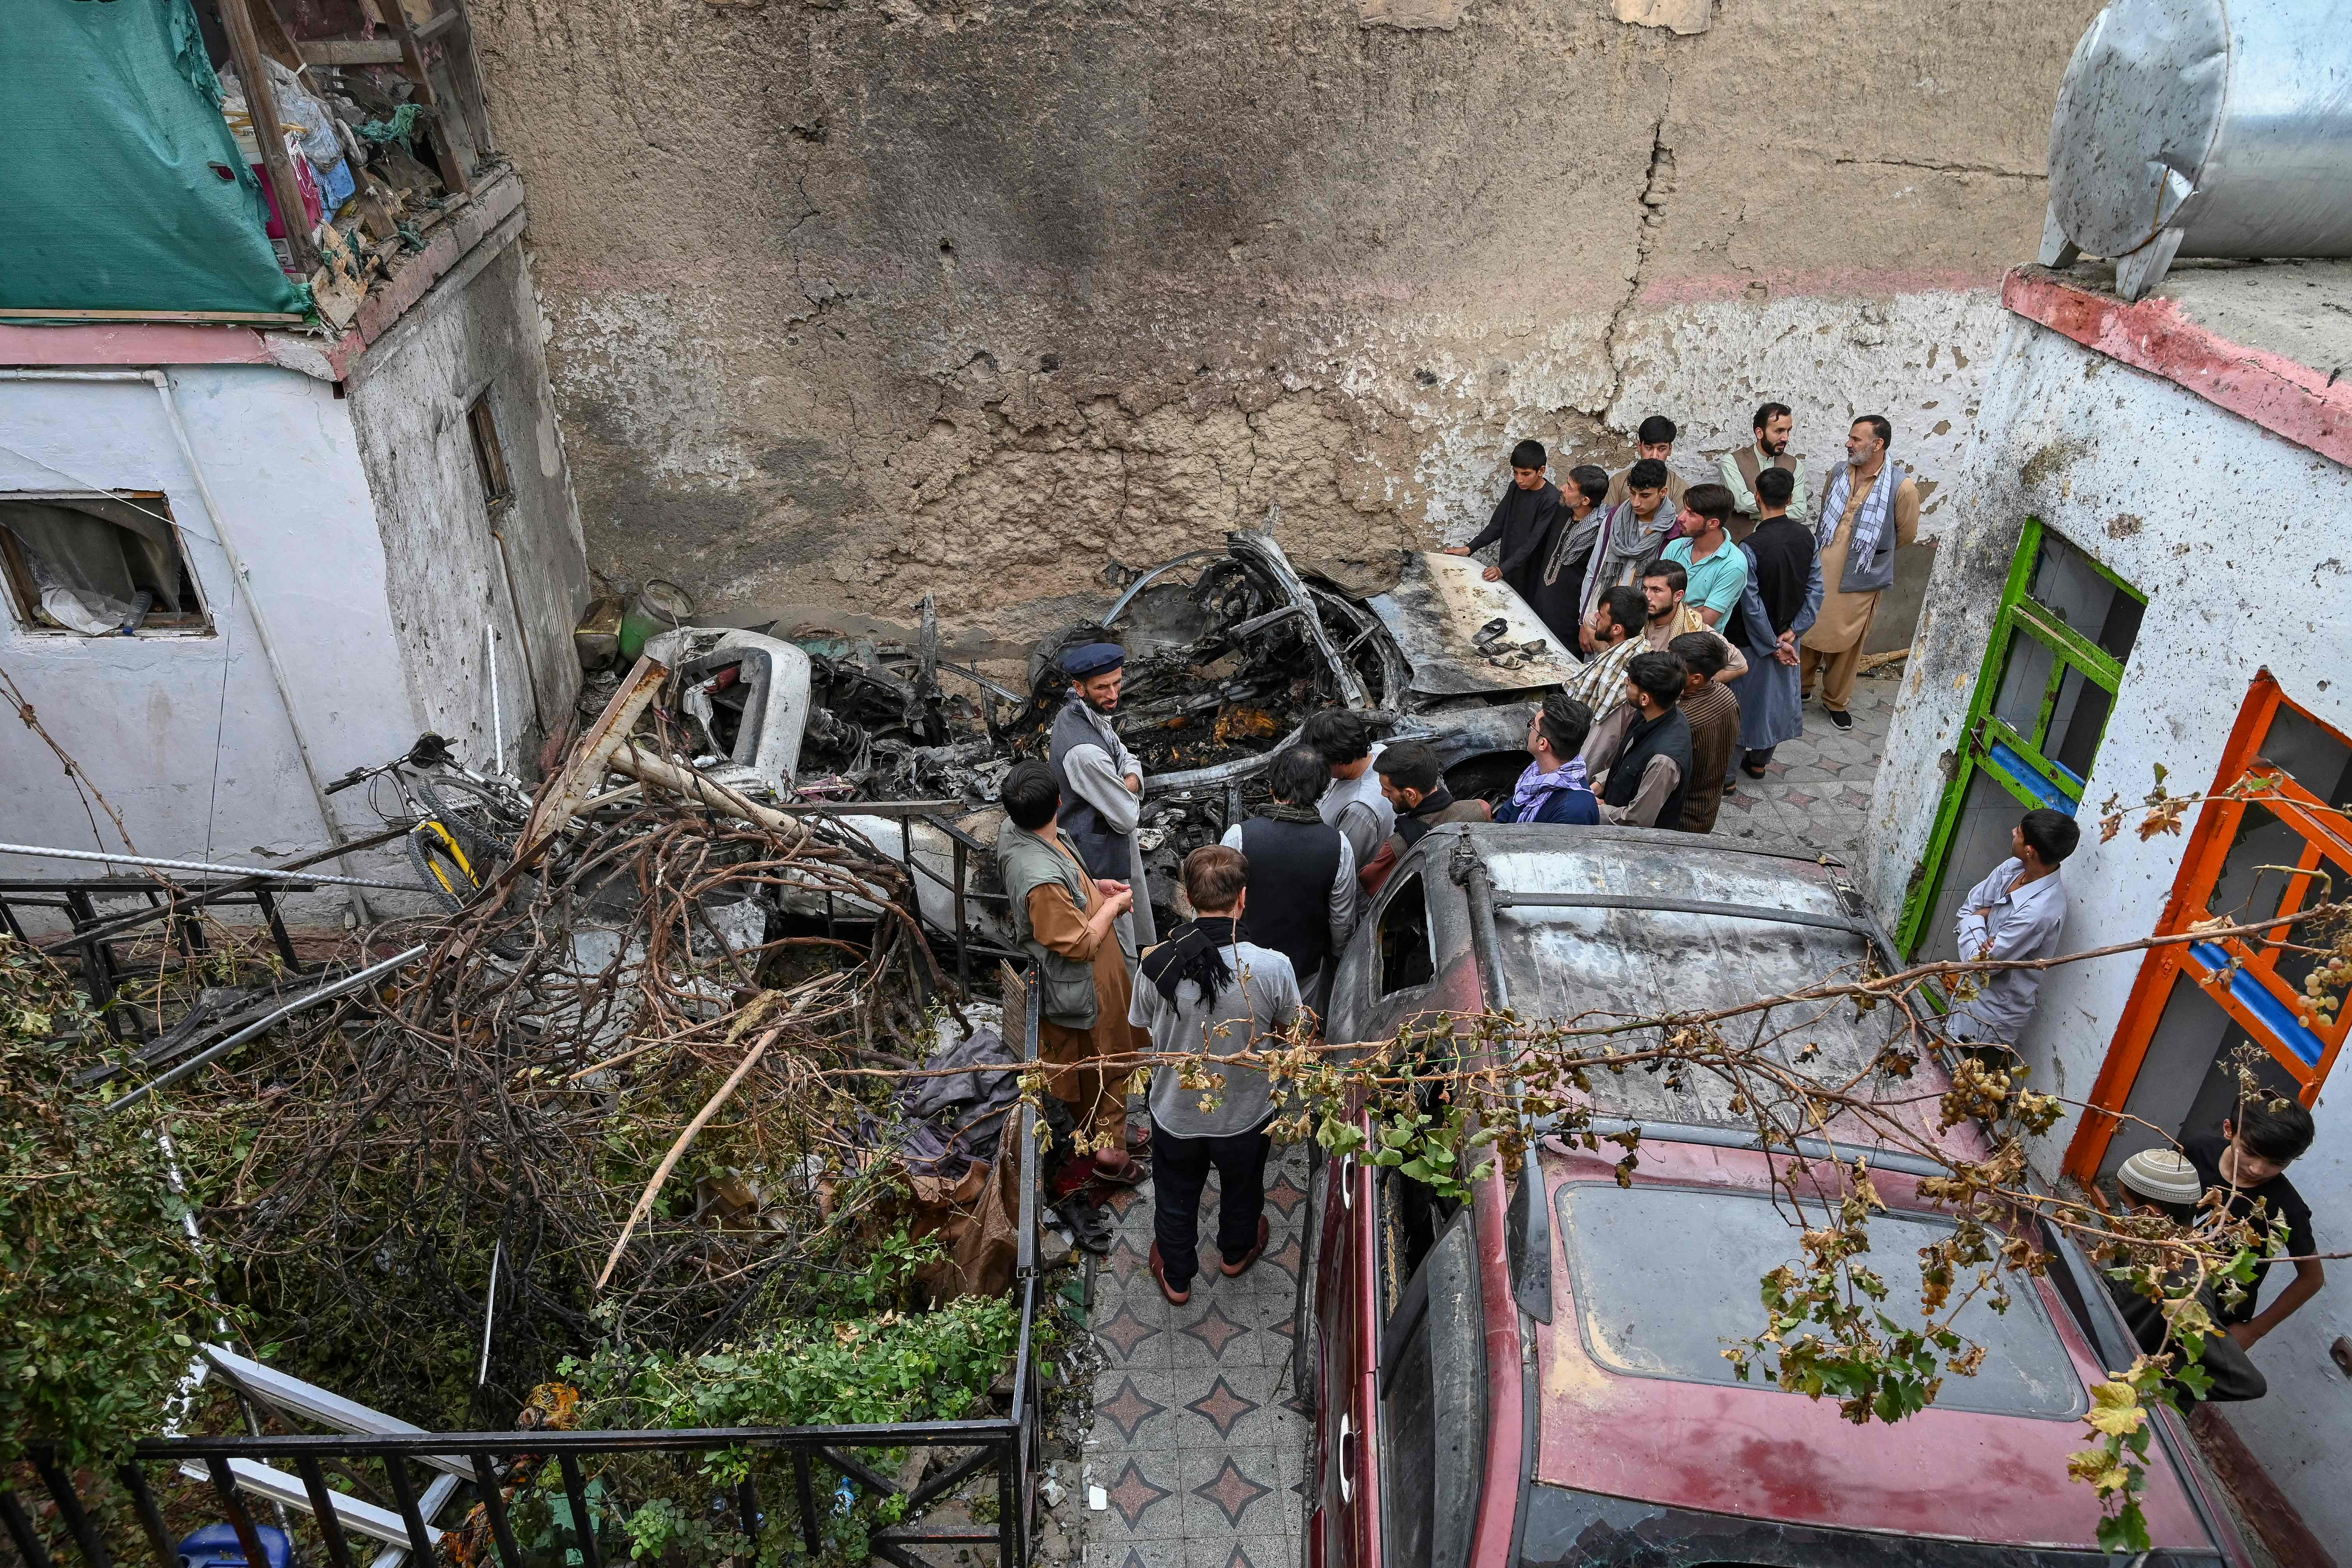 Afghan residents and family members of the victims gather next to a damaged vehicle inside a house, day after a US drone airstrike in Kabul on August 30, 2021. (Photo by WAKIL KOHSAR / AFP) (Photo by WAKIL KOHSAR/AFP via Getty Images) ORG XMIT: 5268 ORIG FILE ID: AFP_9LW4JY.jpg